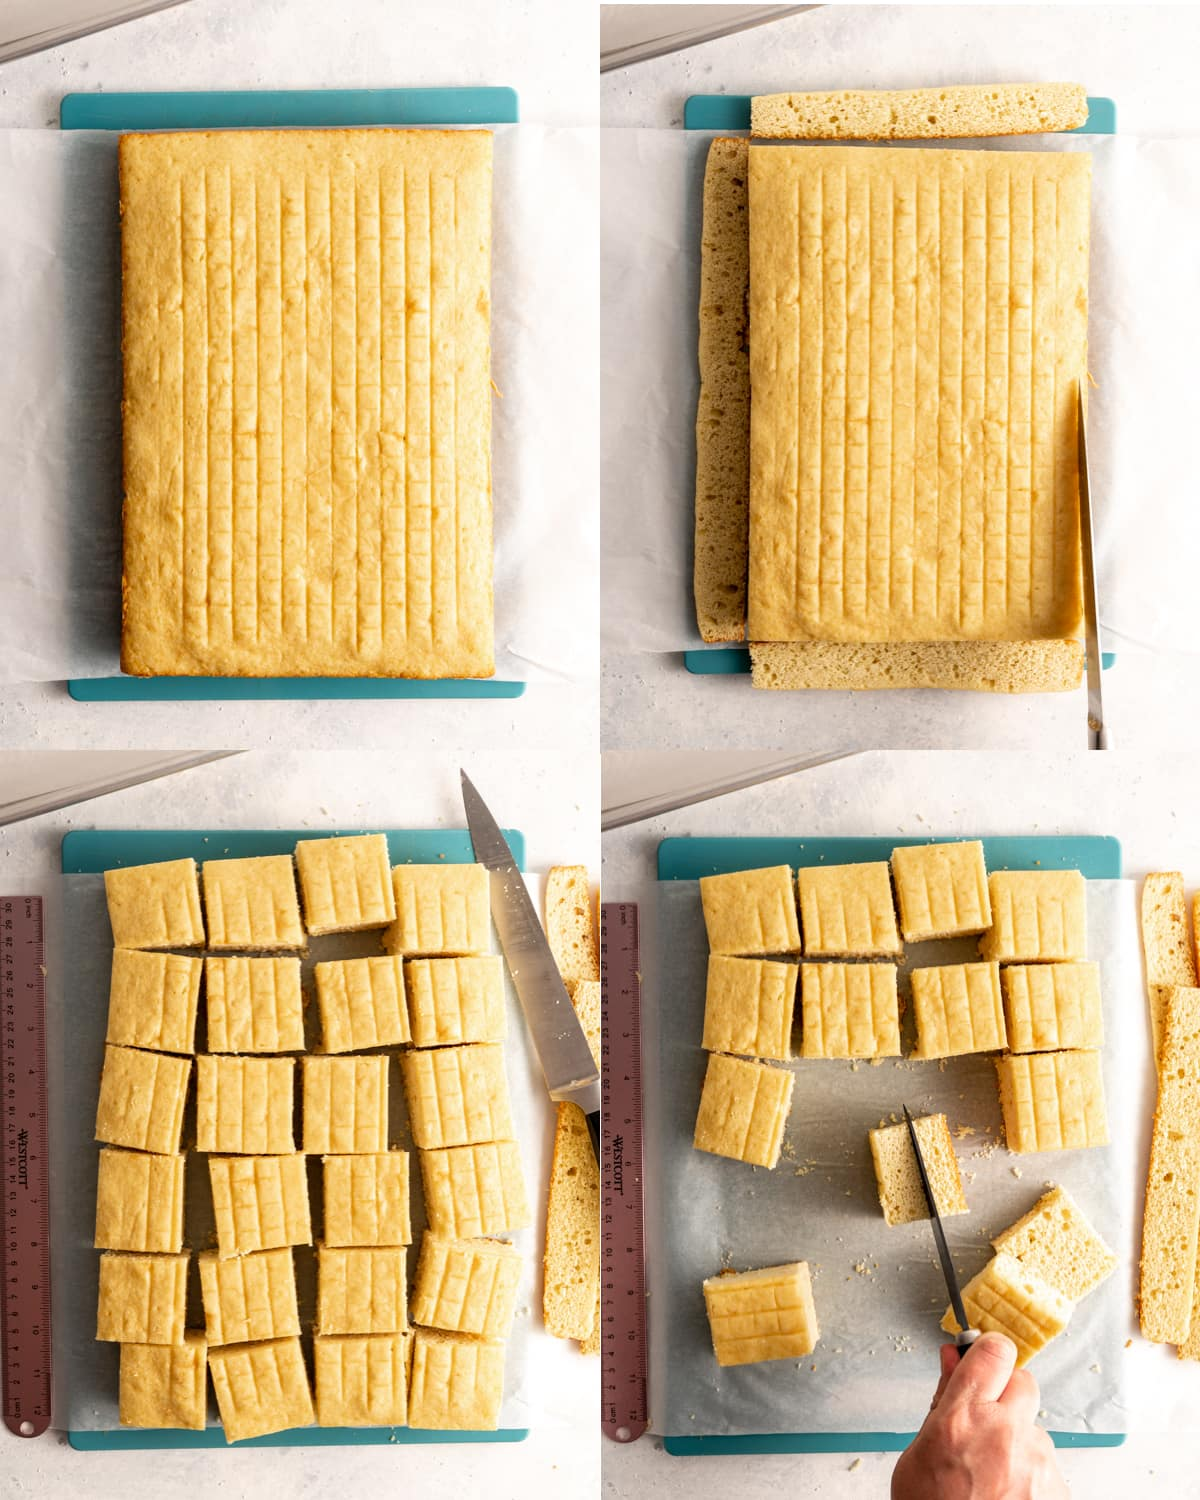 yellow sponge cake in different stages of being cut into squares